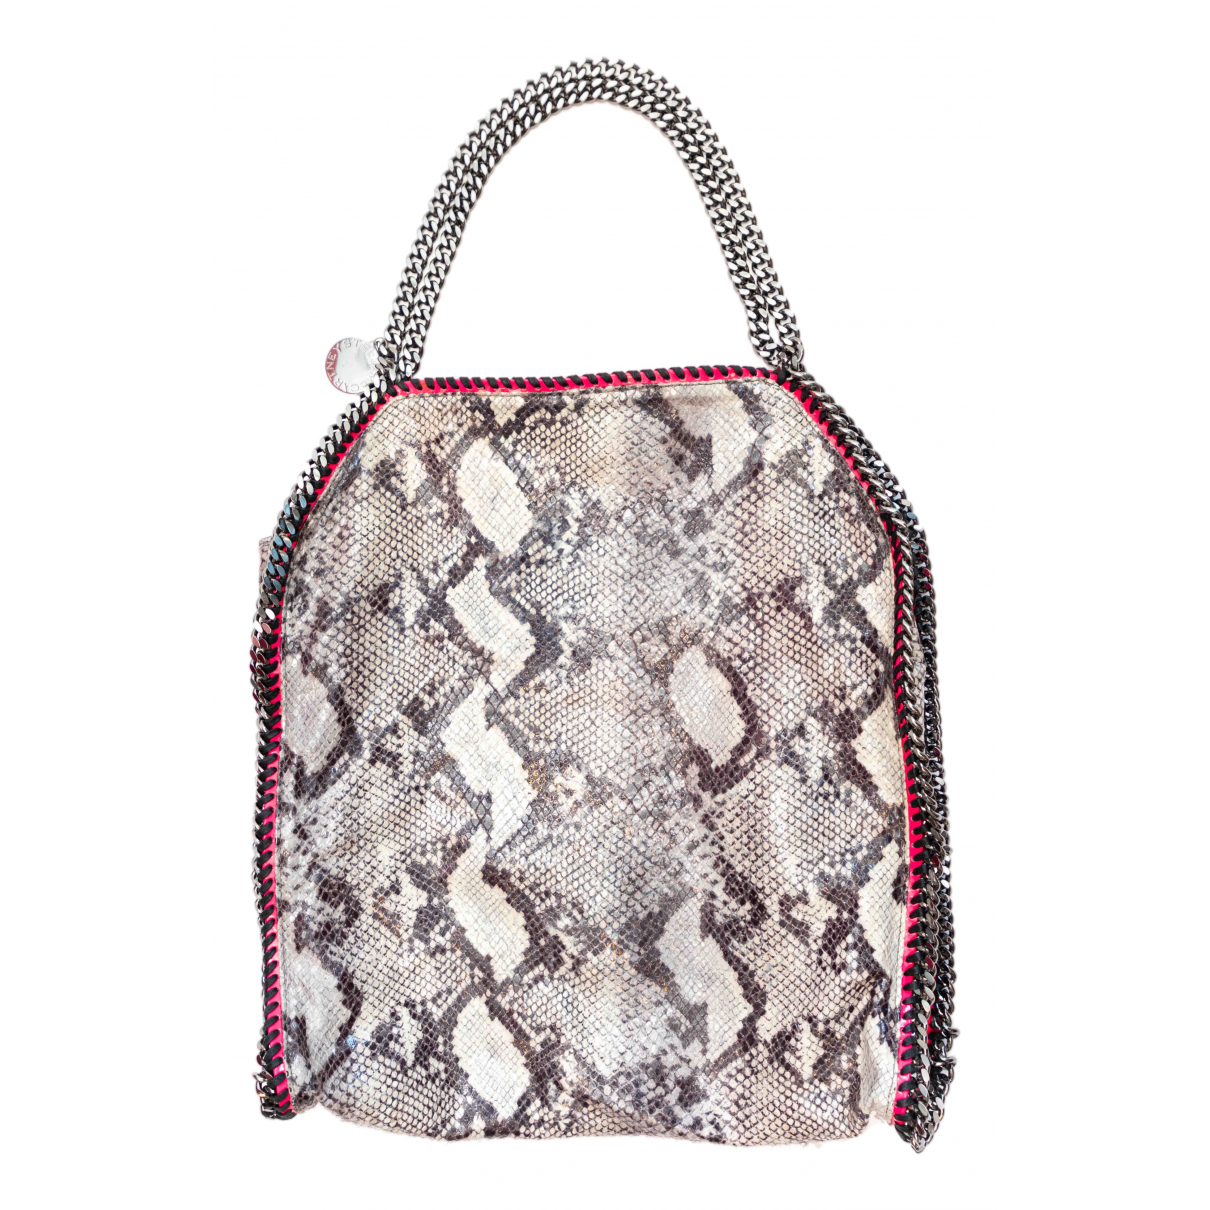 Stella Mccartney Falabella Multicolour handbag for Women \N